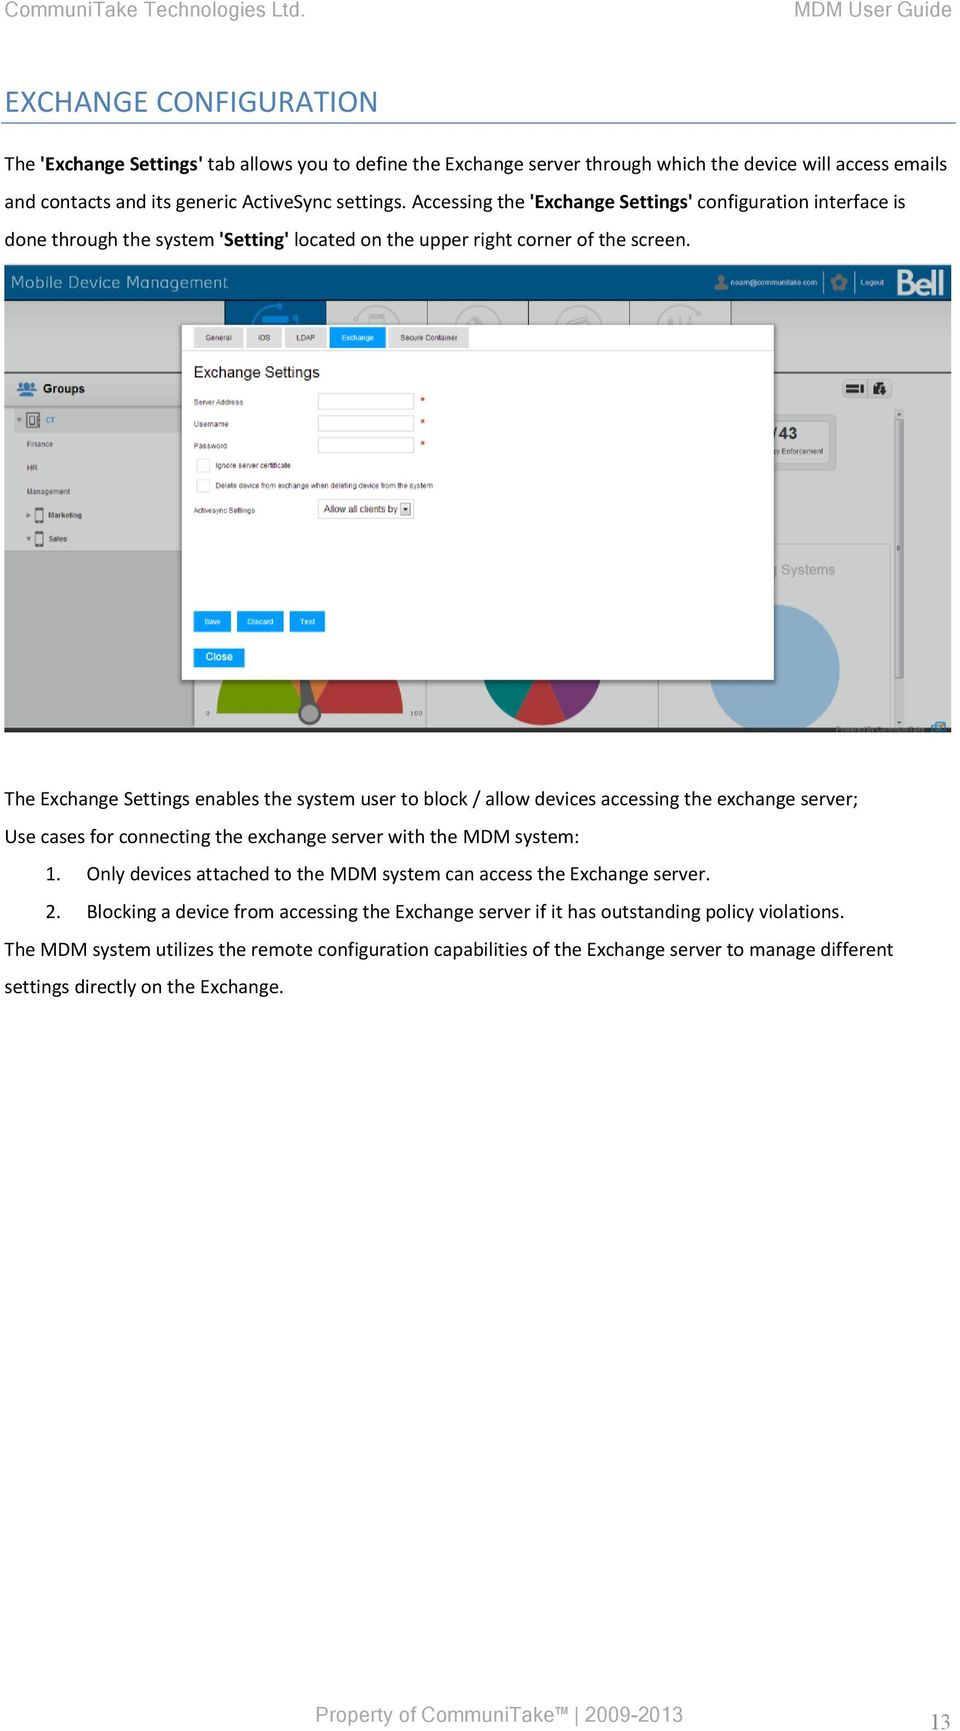 The Exchange Settings enables the system user to block / allow devices accessing the exchange server; Use cases for connecting the exchange server with the MDM system: 1.